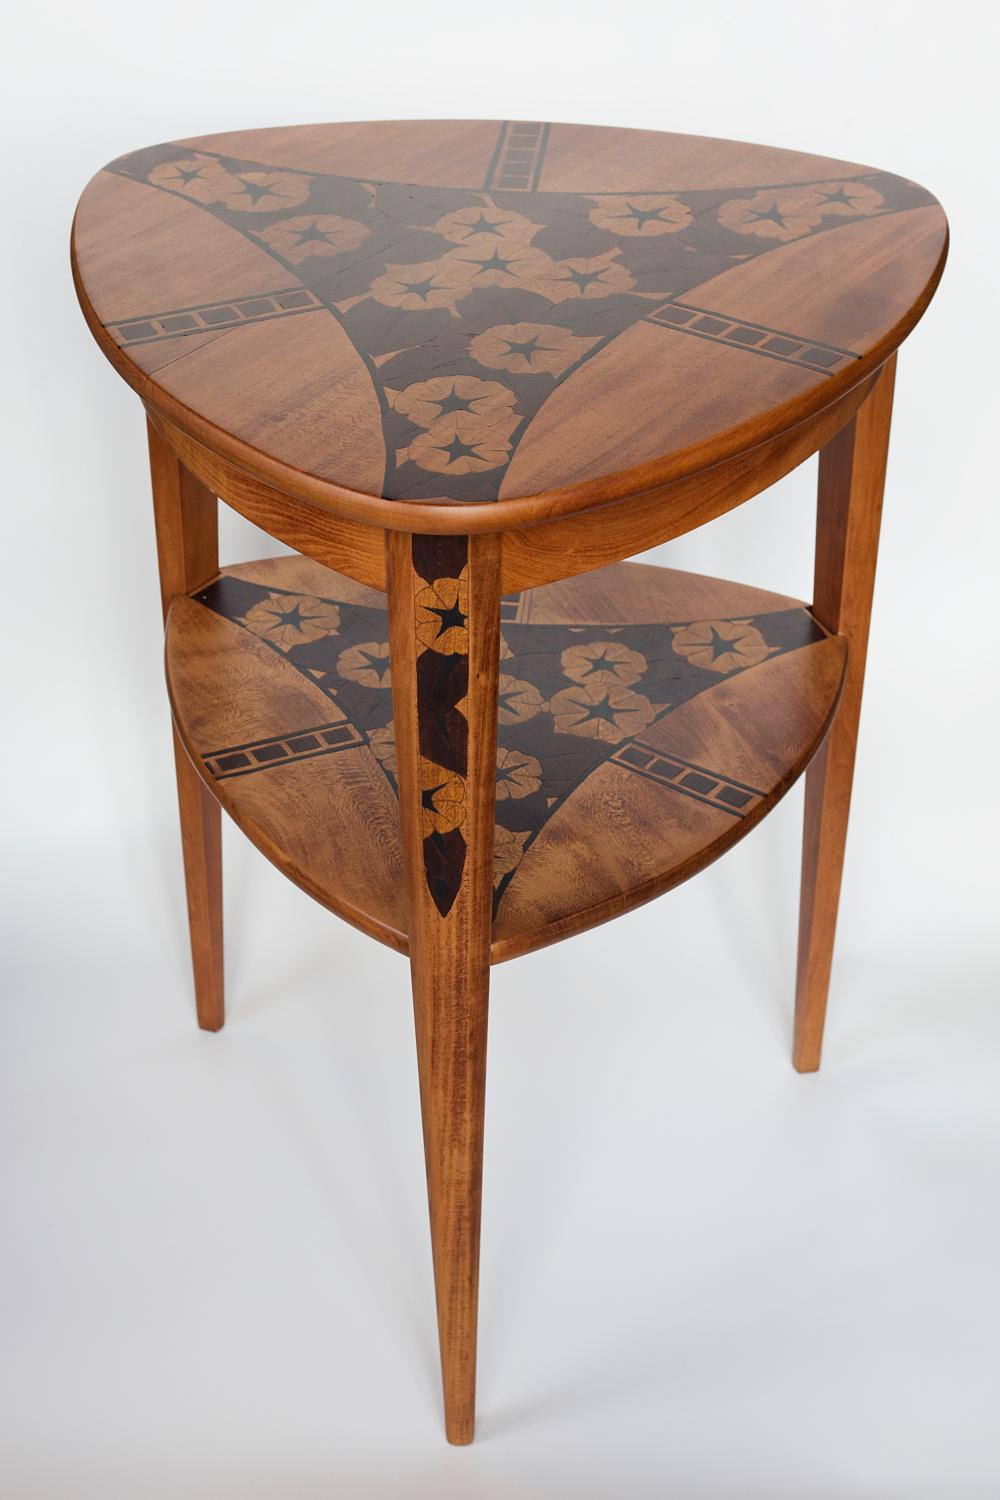 Art Deco period wooden table made in Marquetry tehnique.